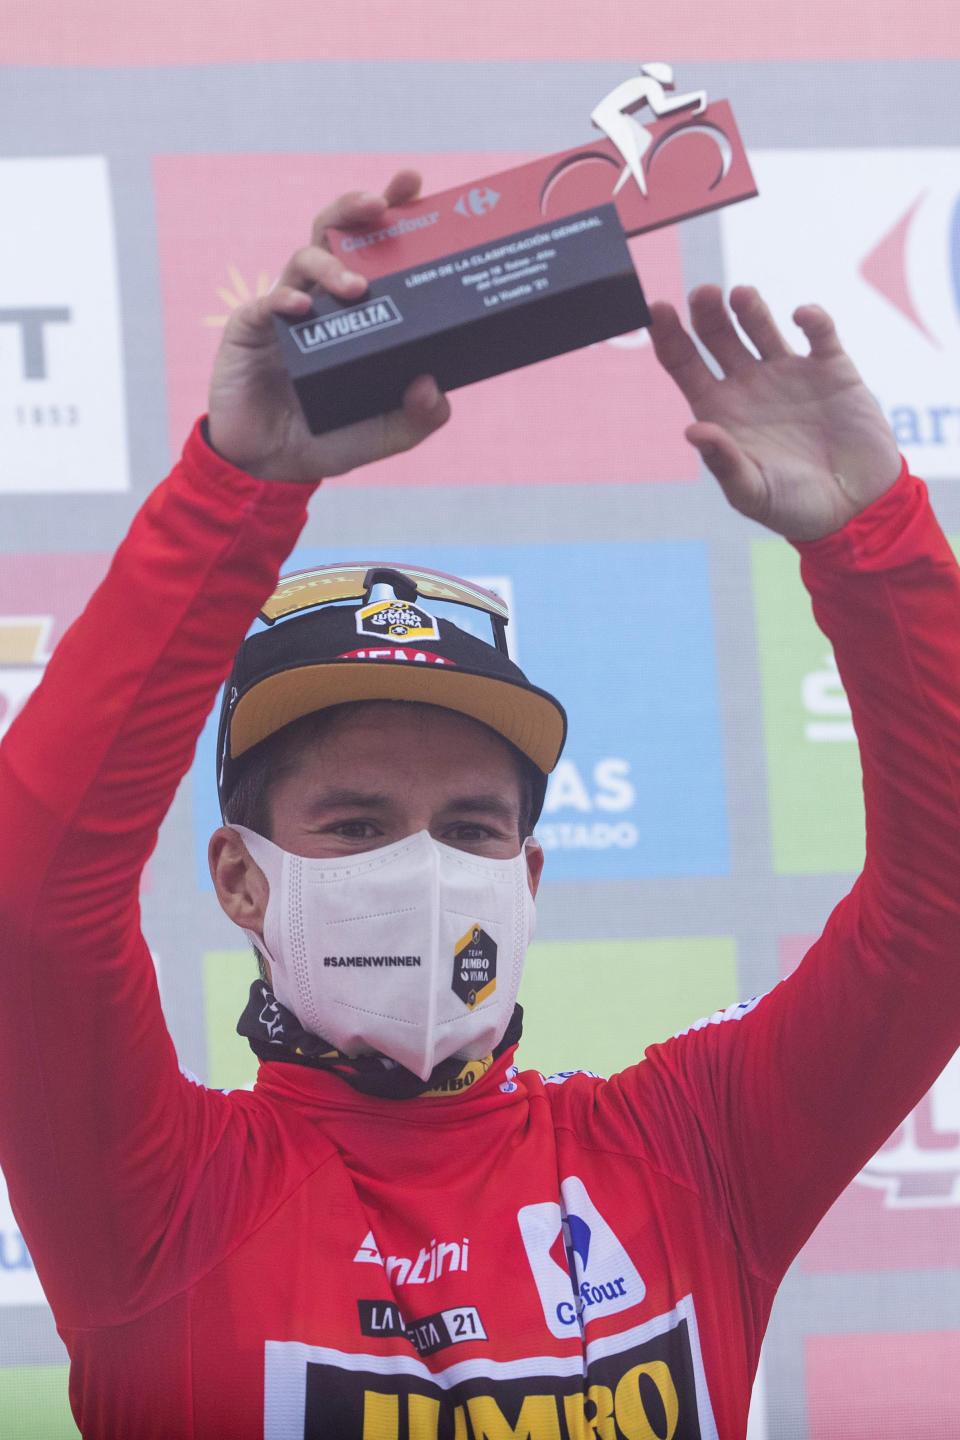 Primoz Roglic of Slovenia wears the red-shirt La Vuelta leader on the podium at the end the 18th stage between Salas and Alto del Gamoniteiro, during La Vuelta cycling race in Spain, Thursday Sept. 2, 2021. (AP Photo/Lalo R. Villar)